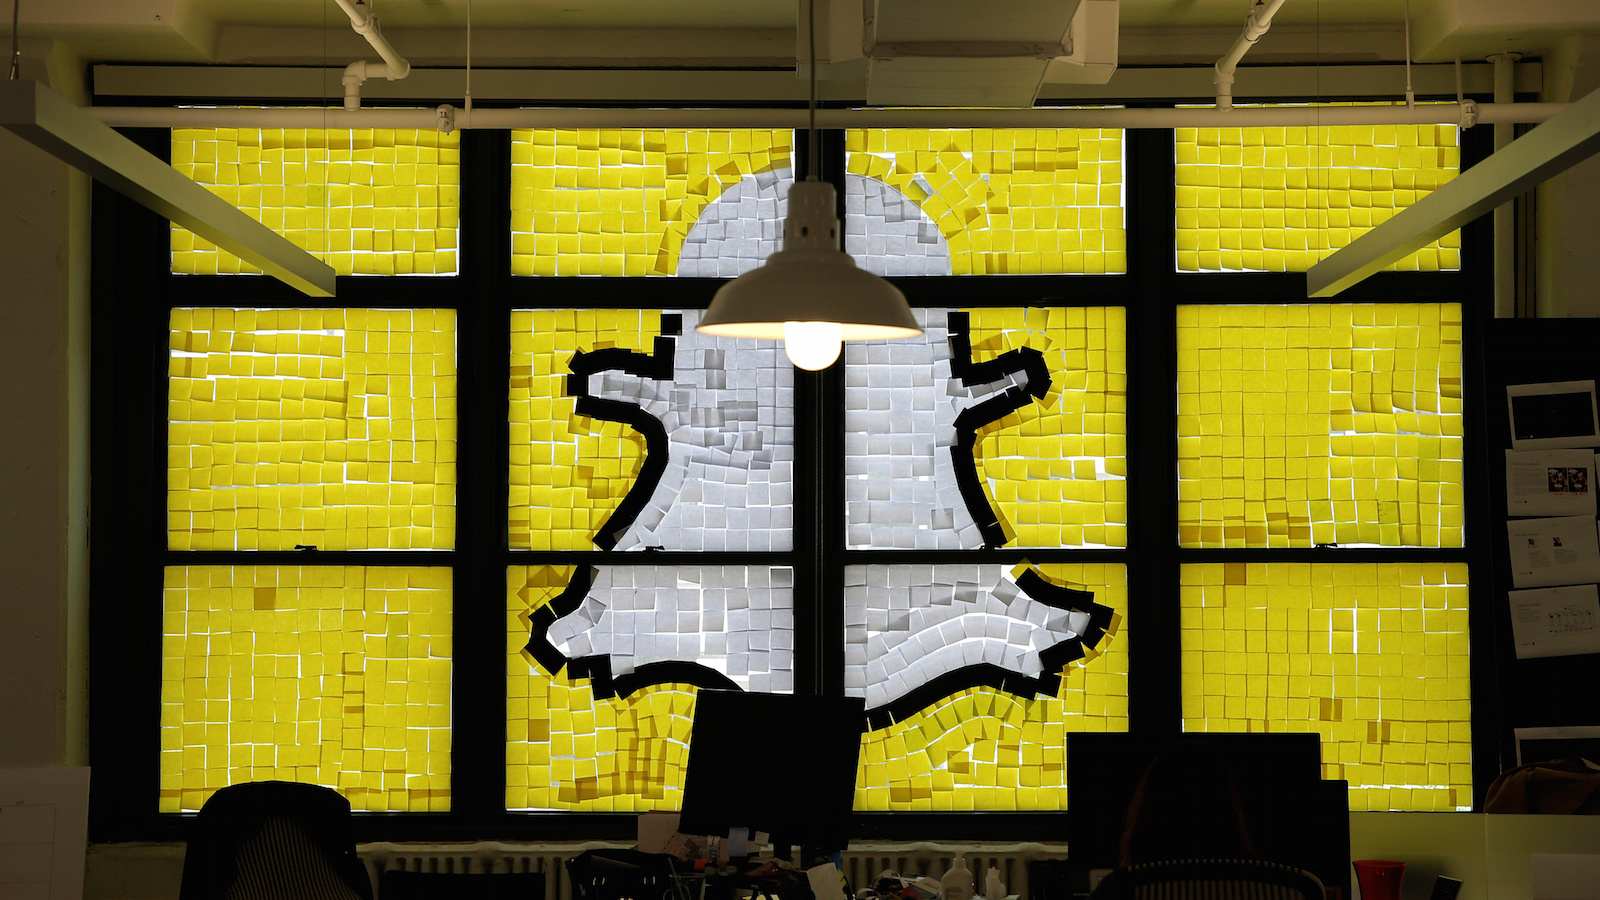 "An image of the Snapchat logo created with Post-it notes is seen in the windows of Havas Worldwide at 200 Hudson Street in lower Manhattan, New York, U.S., May 18, 2016, where advertising agencies and other companies have started what is being called a ""Post-it note war"" with employees creating colorful images in their windows with Post-it notes."